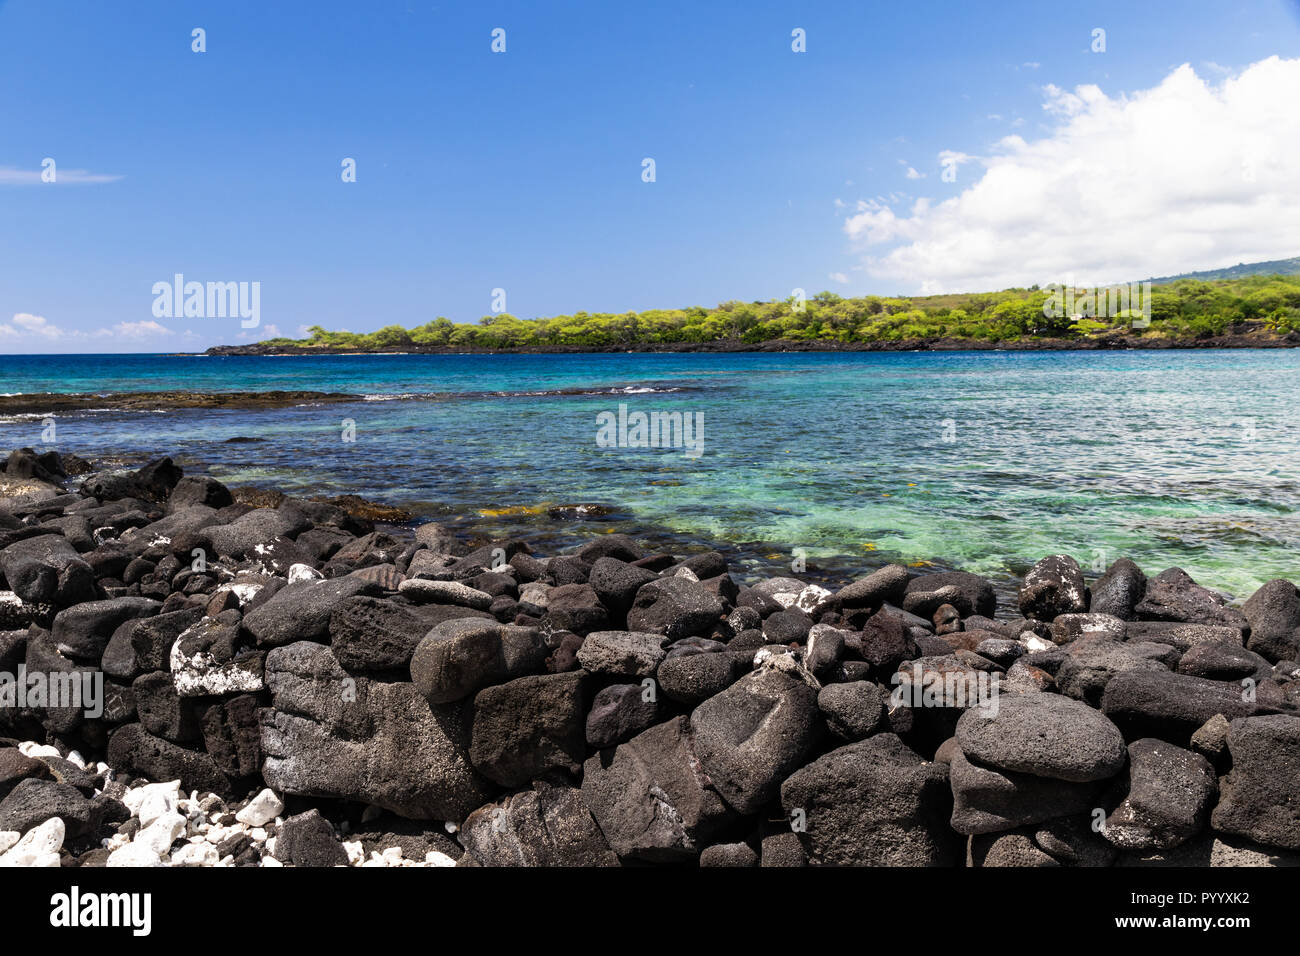 View of kealakekua bay on Hawaii's Big Island. Crystal clear blue-green water in the bay; coastline in the background Stock Photo